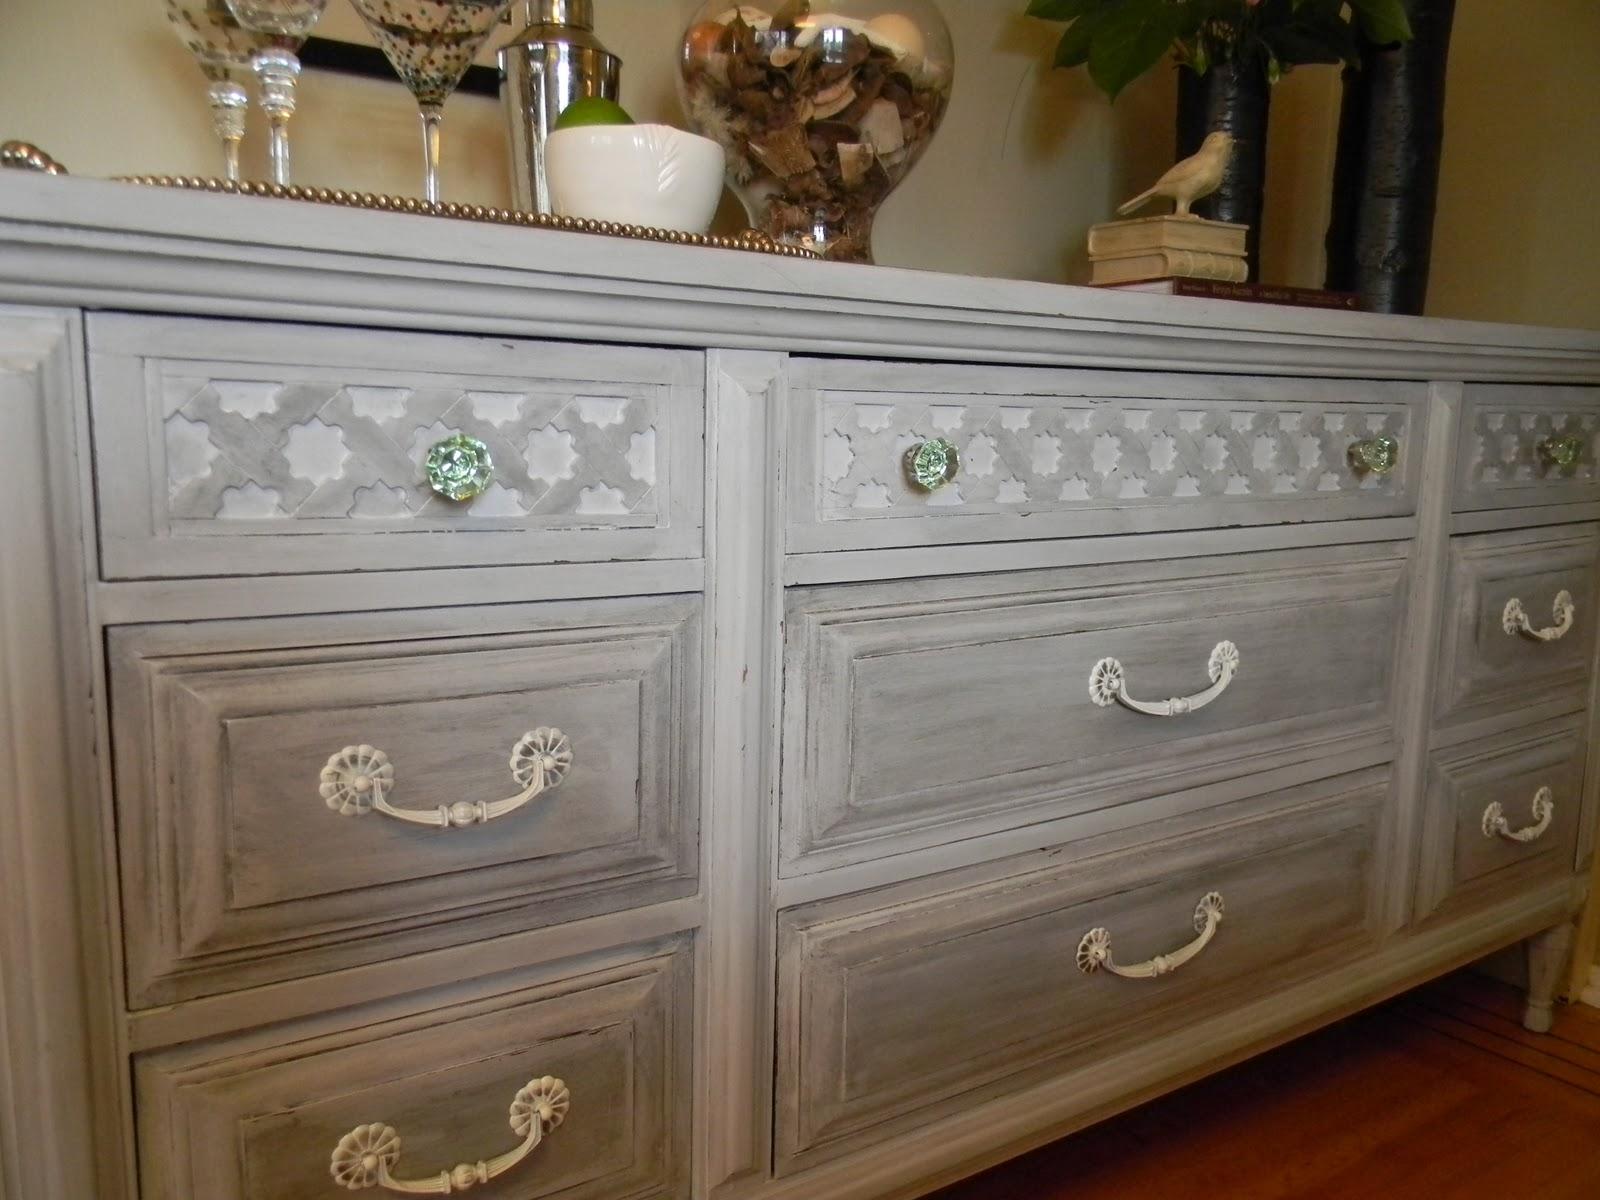 A Distressed Dresser Project Emily Clark